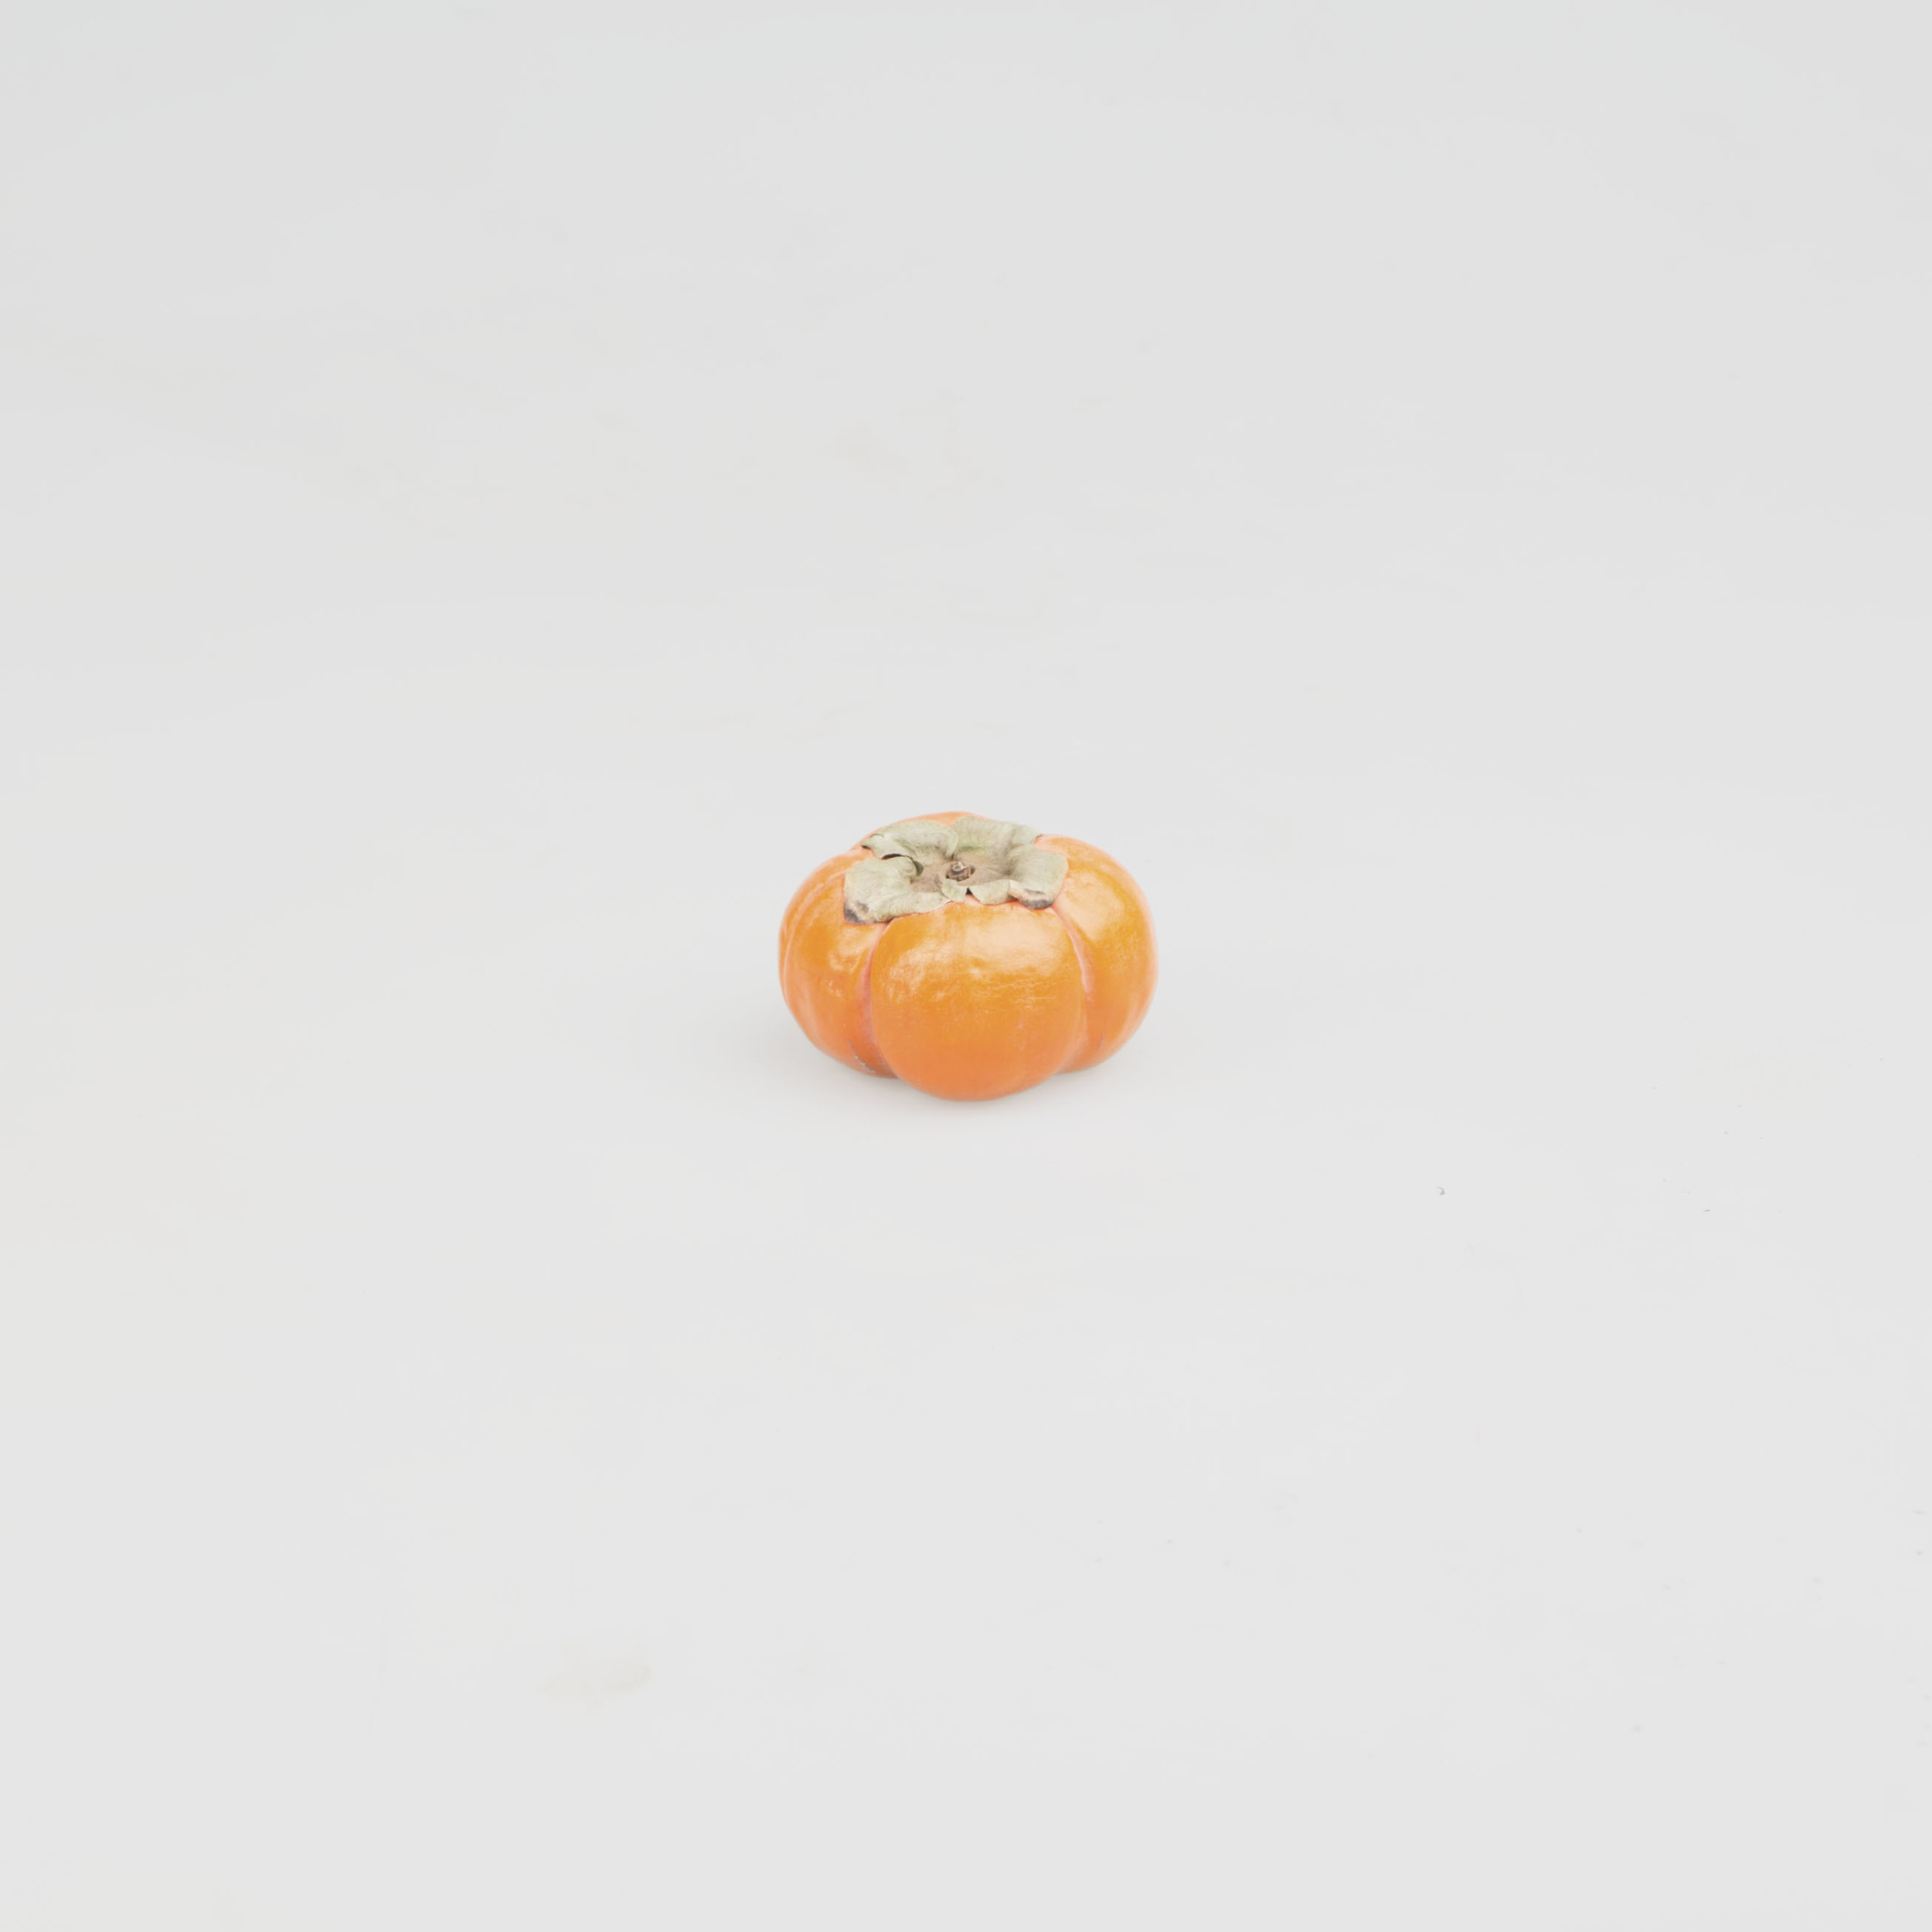 28_Oct_Persimmon copy.jpg